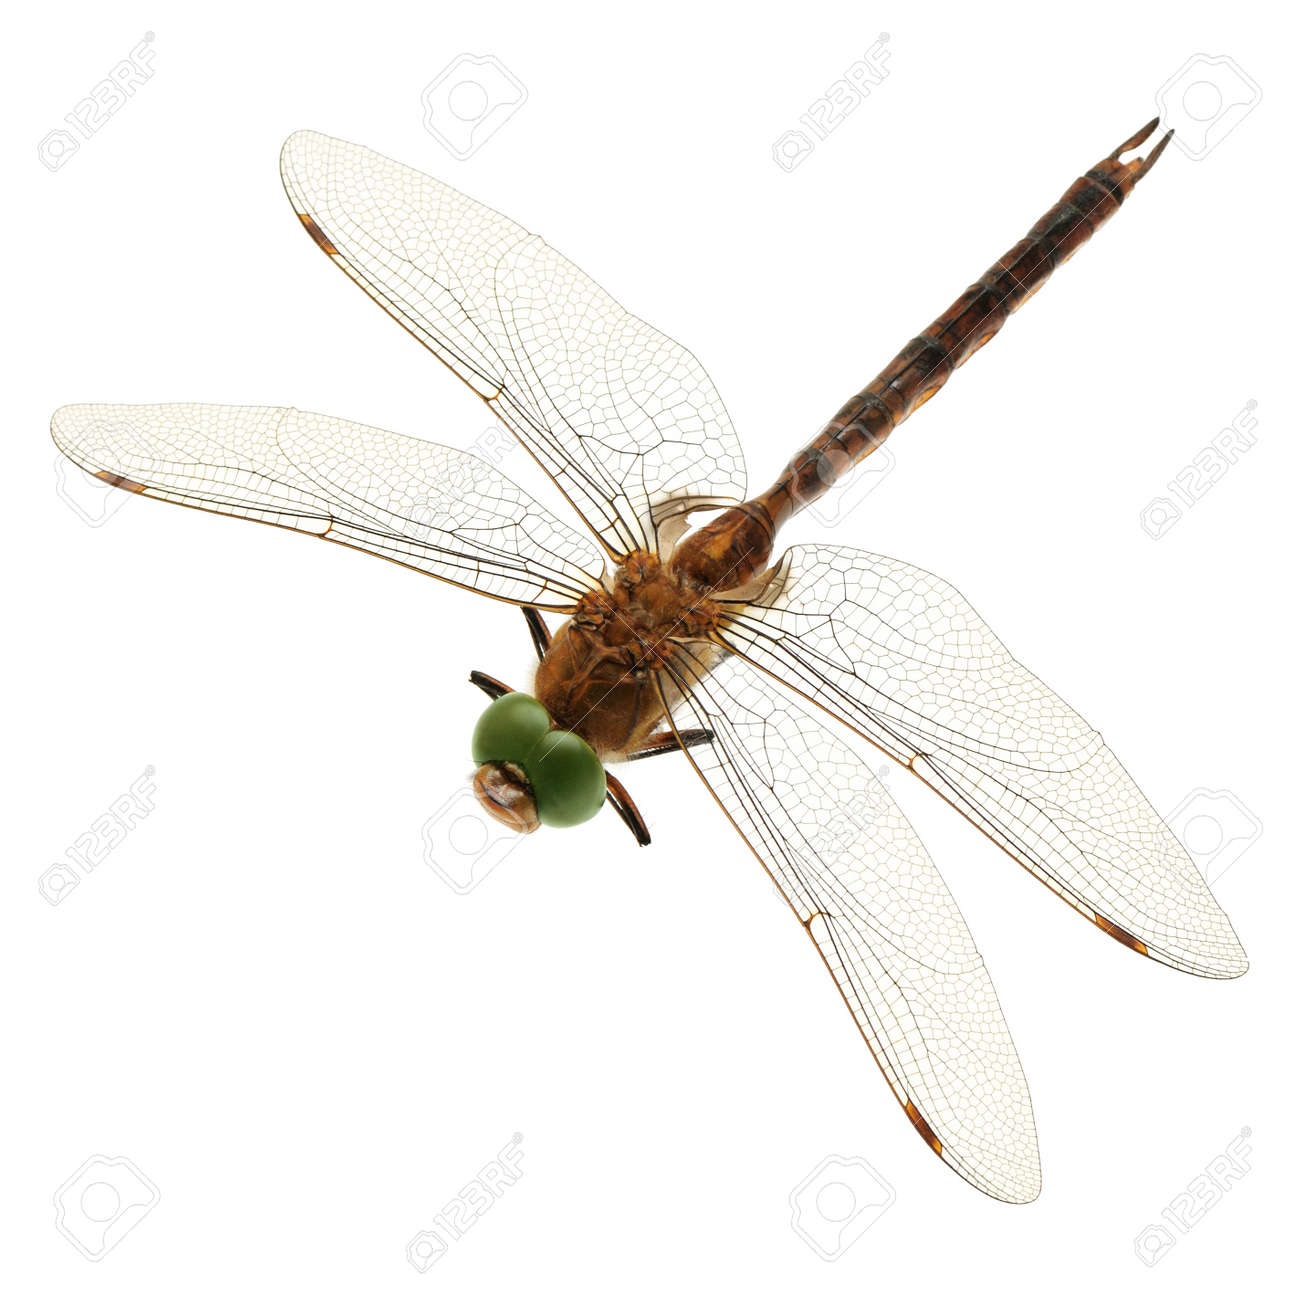 dragonfly isolated on a white background Stock Photo - 10552311